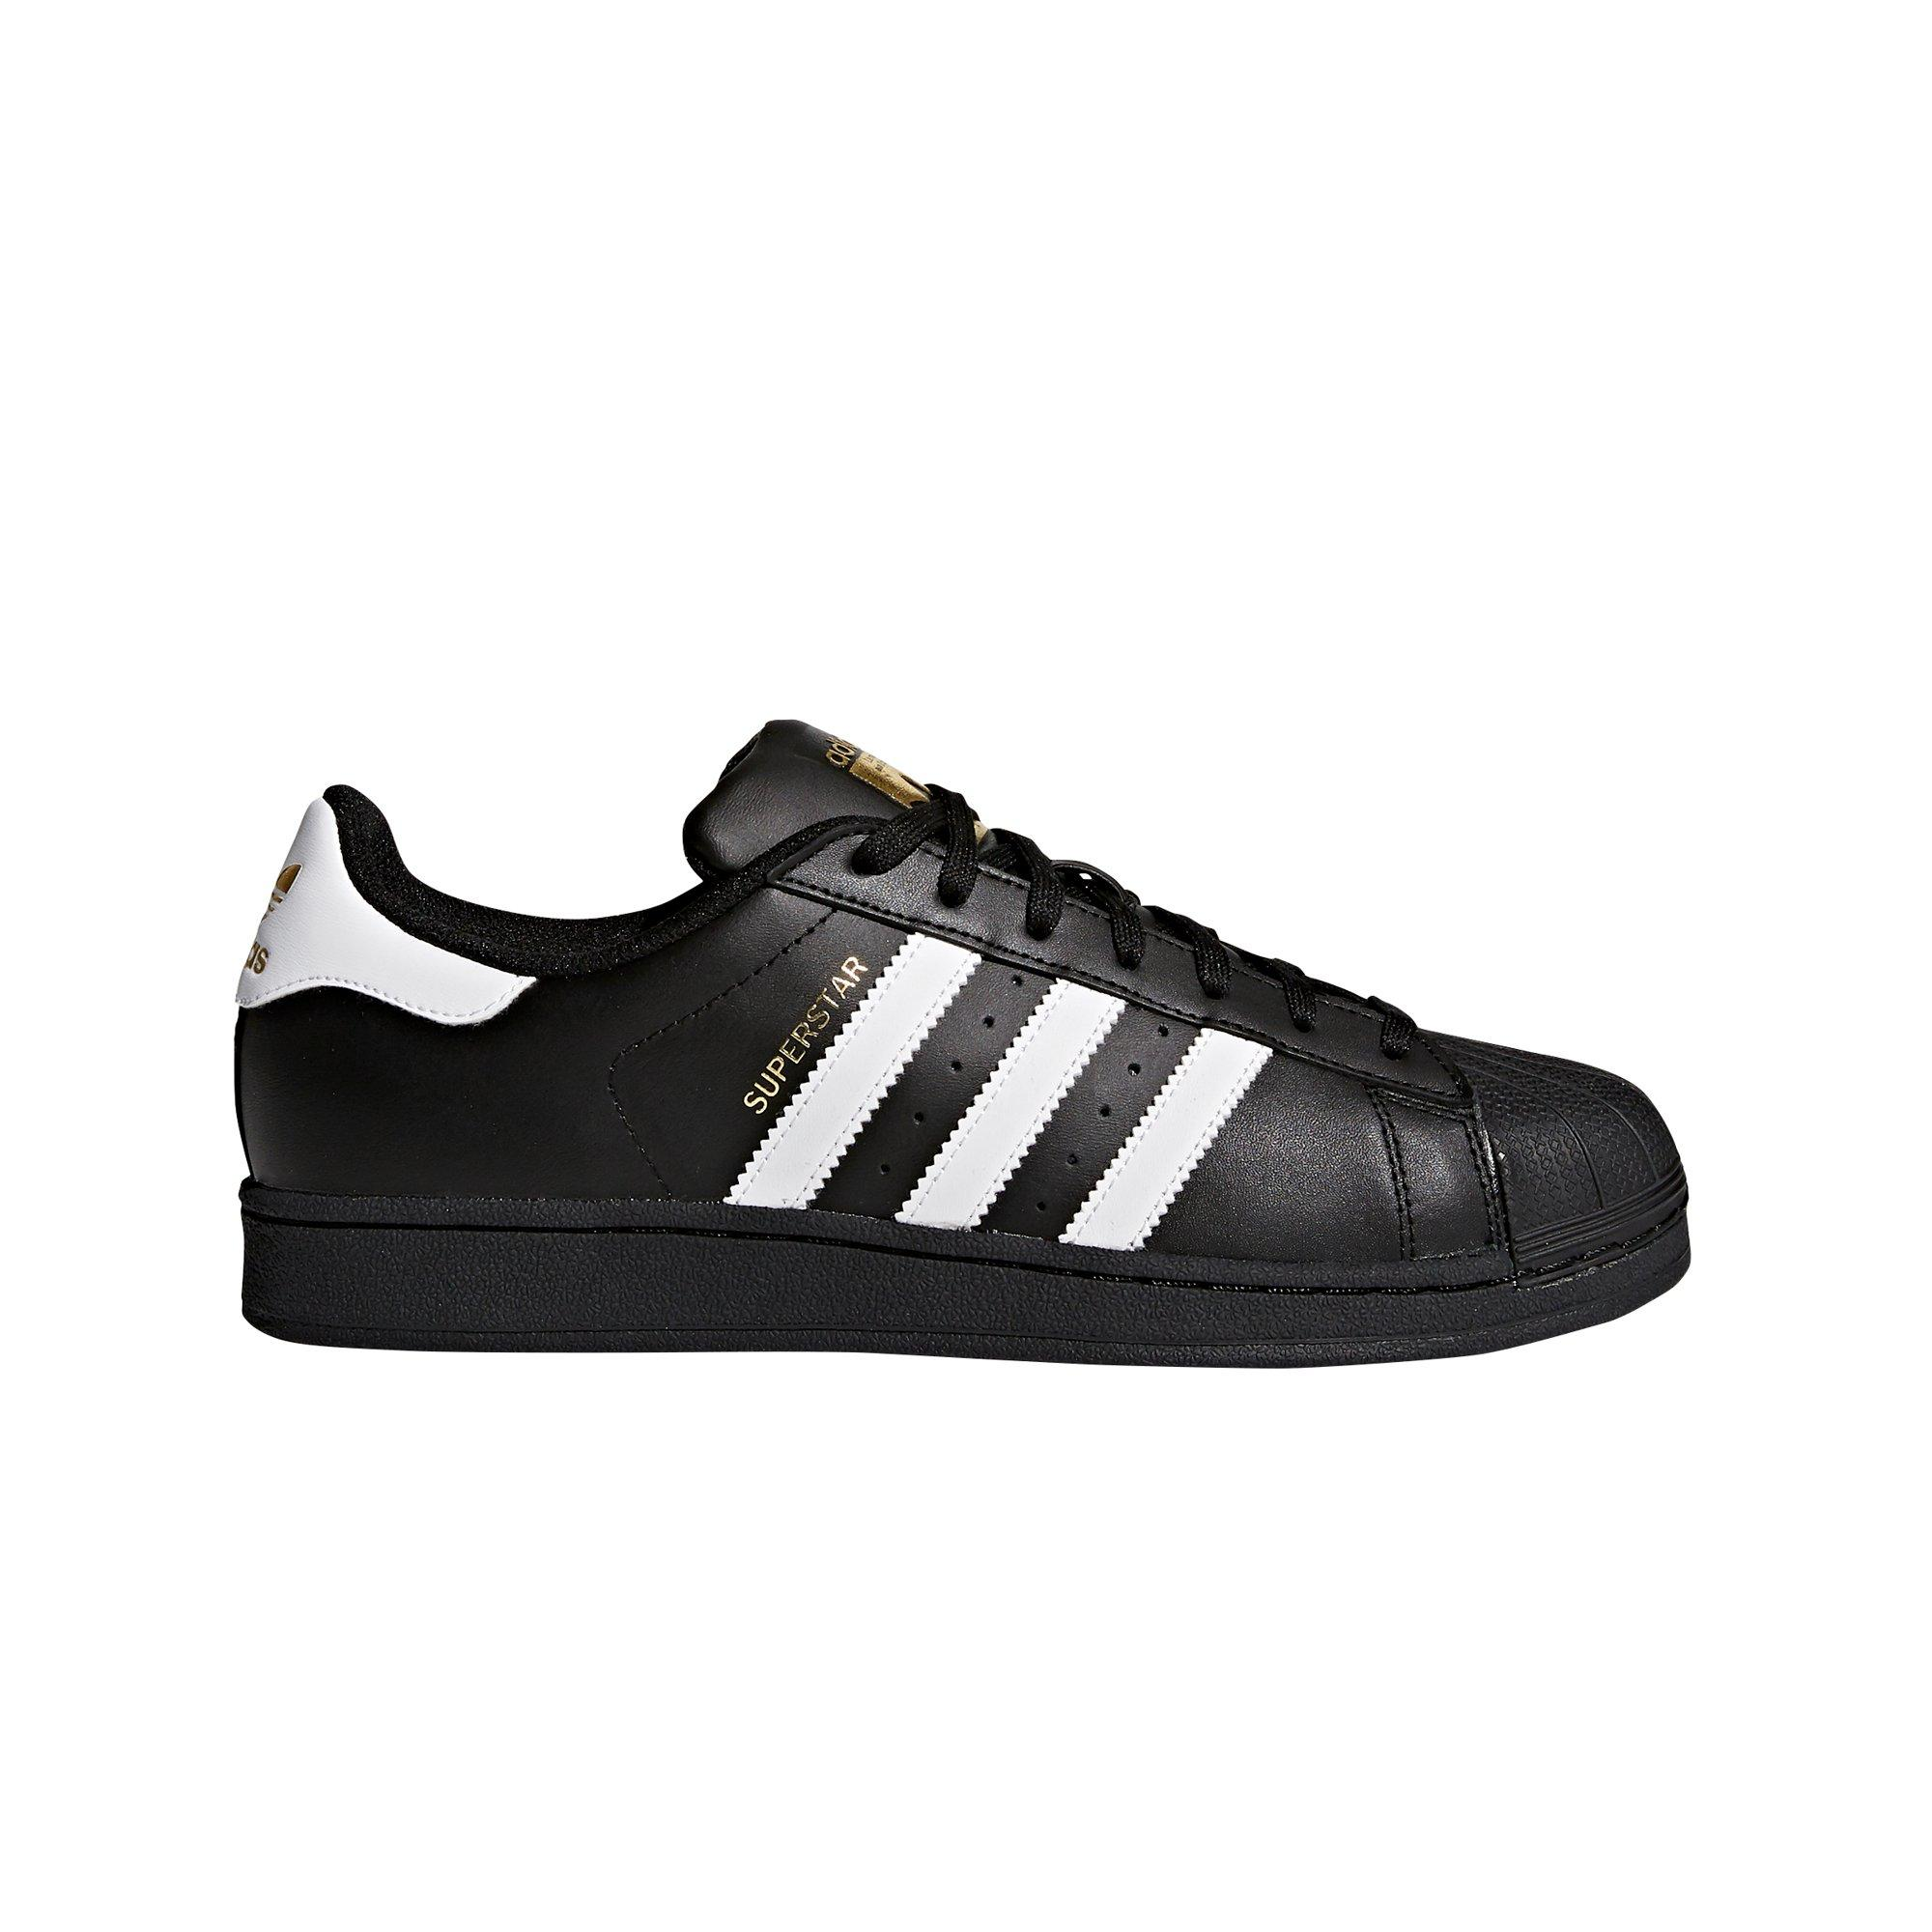 adidas superstar black and white 3.5